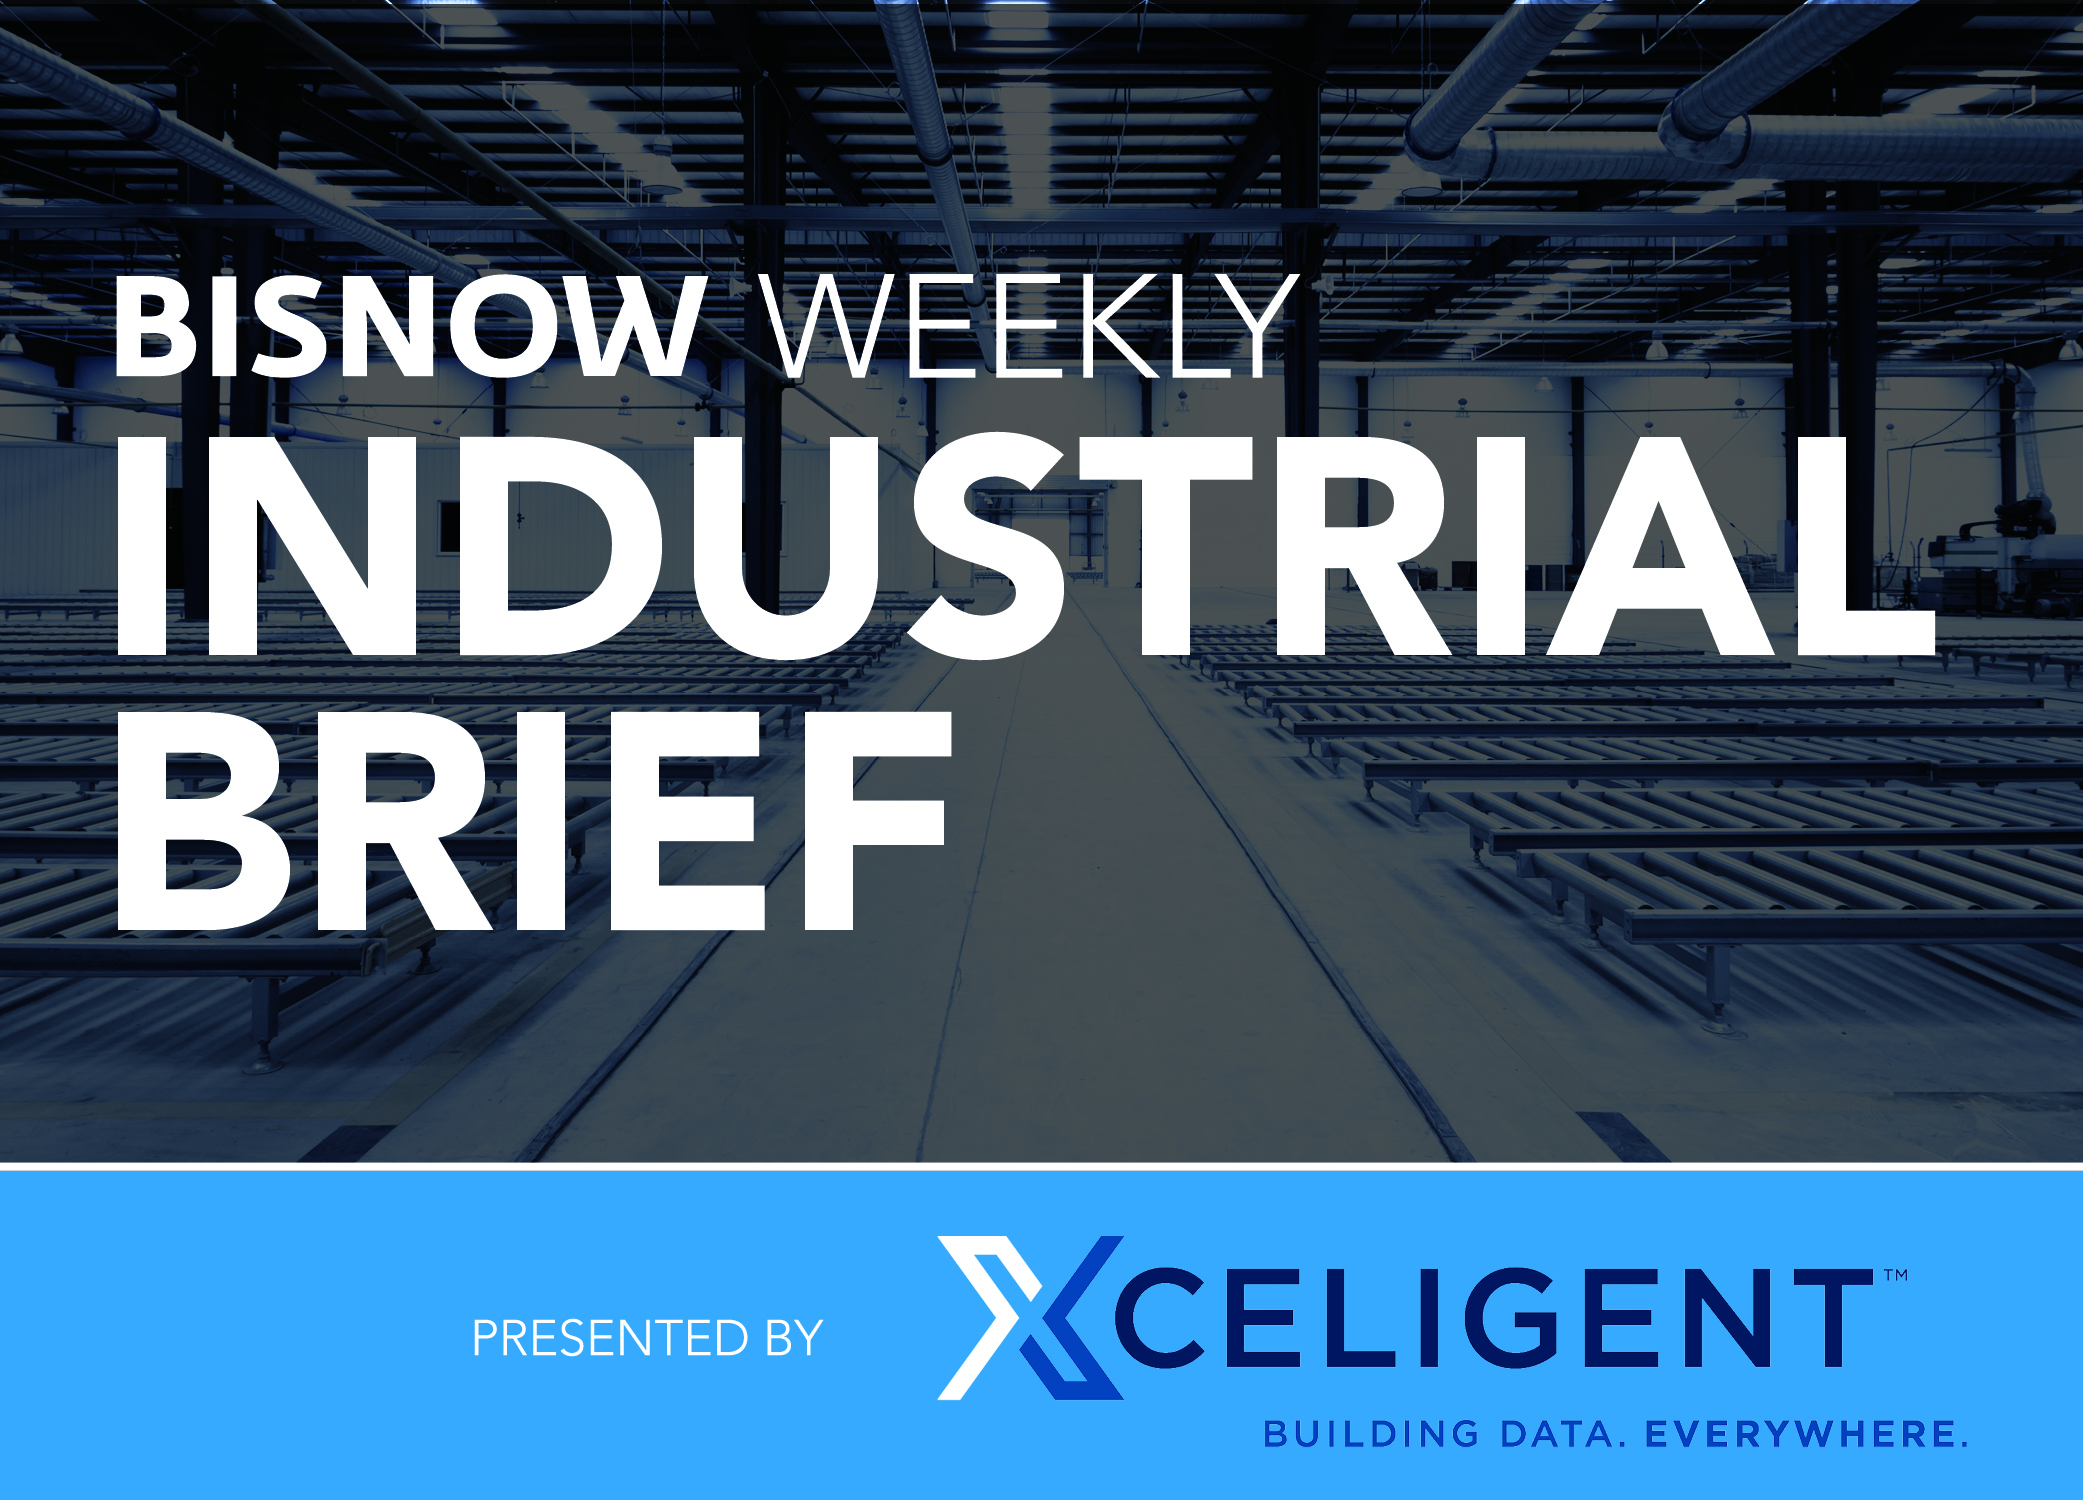 Bisnow Morning Brief Industrial Weekly